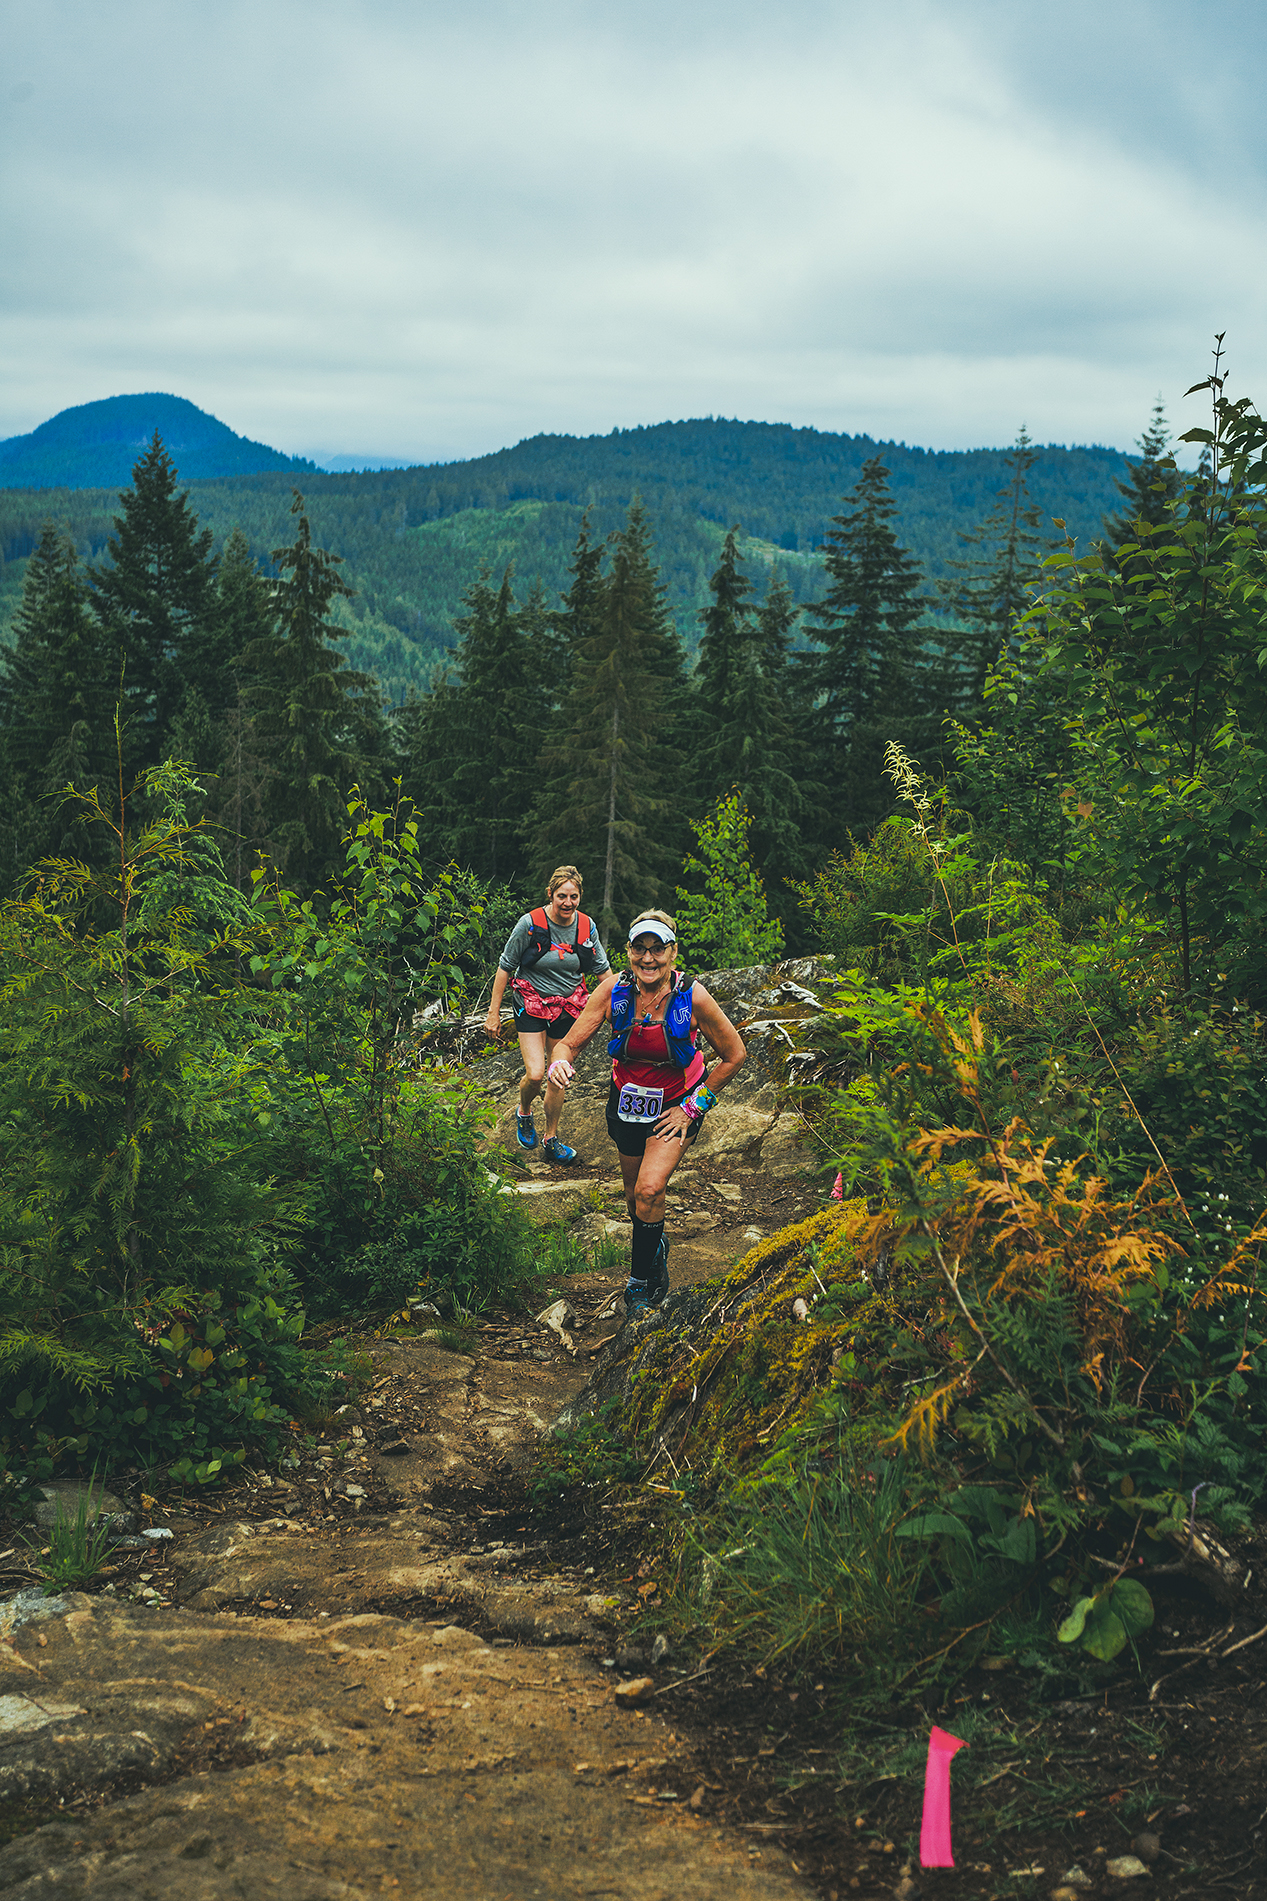 Fraser Valley Trail Races - Bear Mountain - IMG_2594 by Brice Ferre Studio - Vancouver Portrait Adventure and Athlete Photographer.jpg